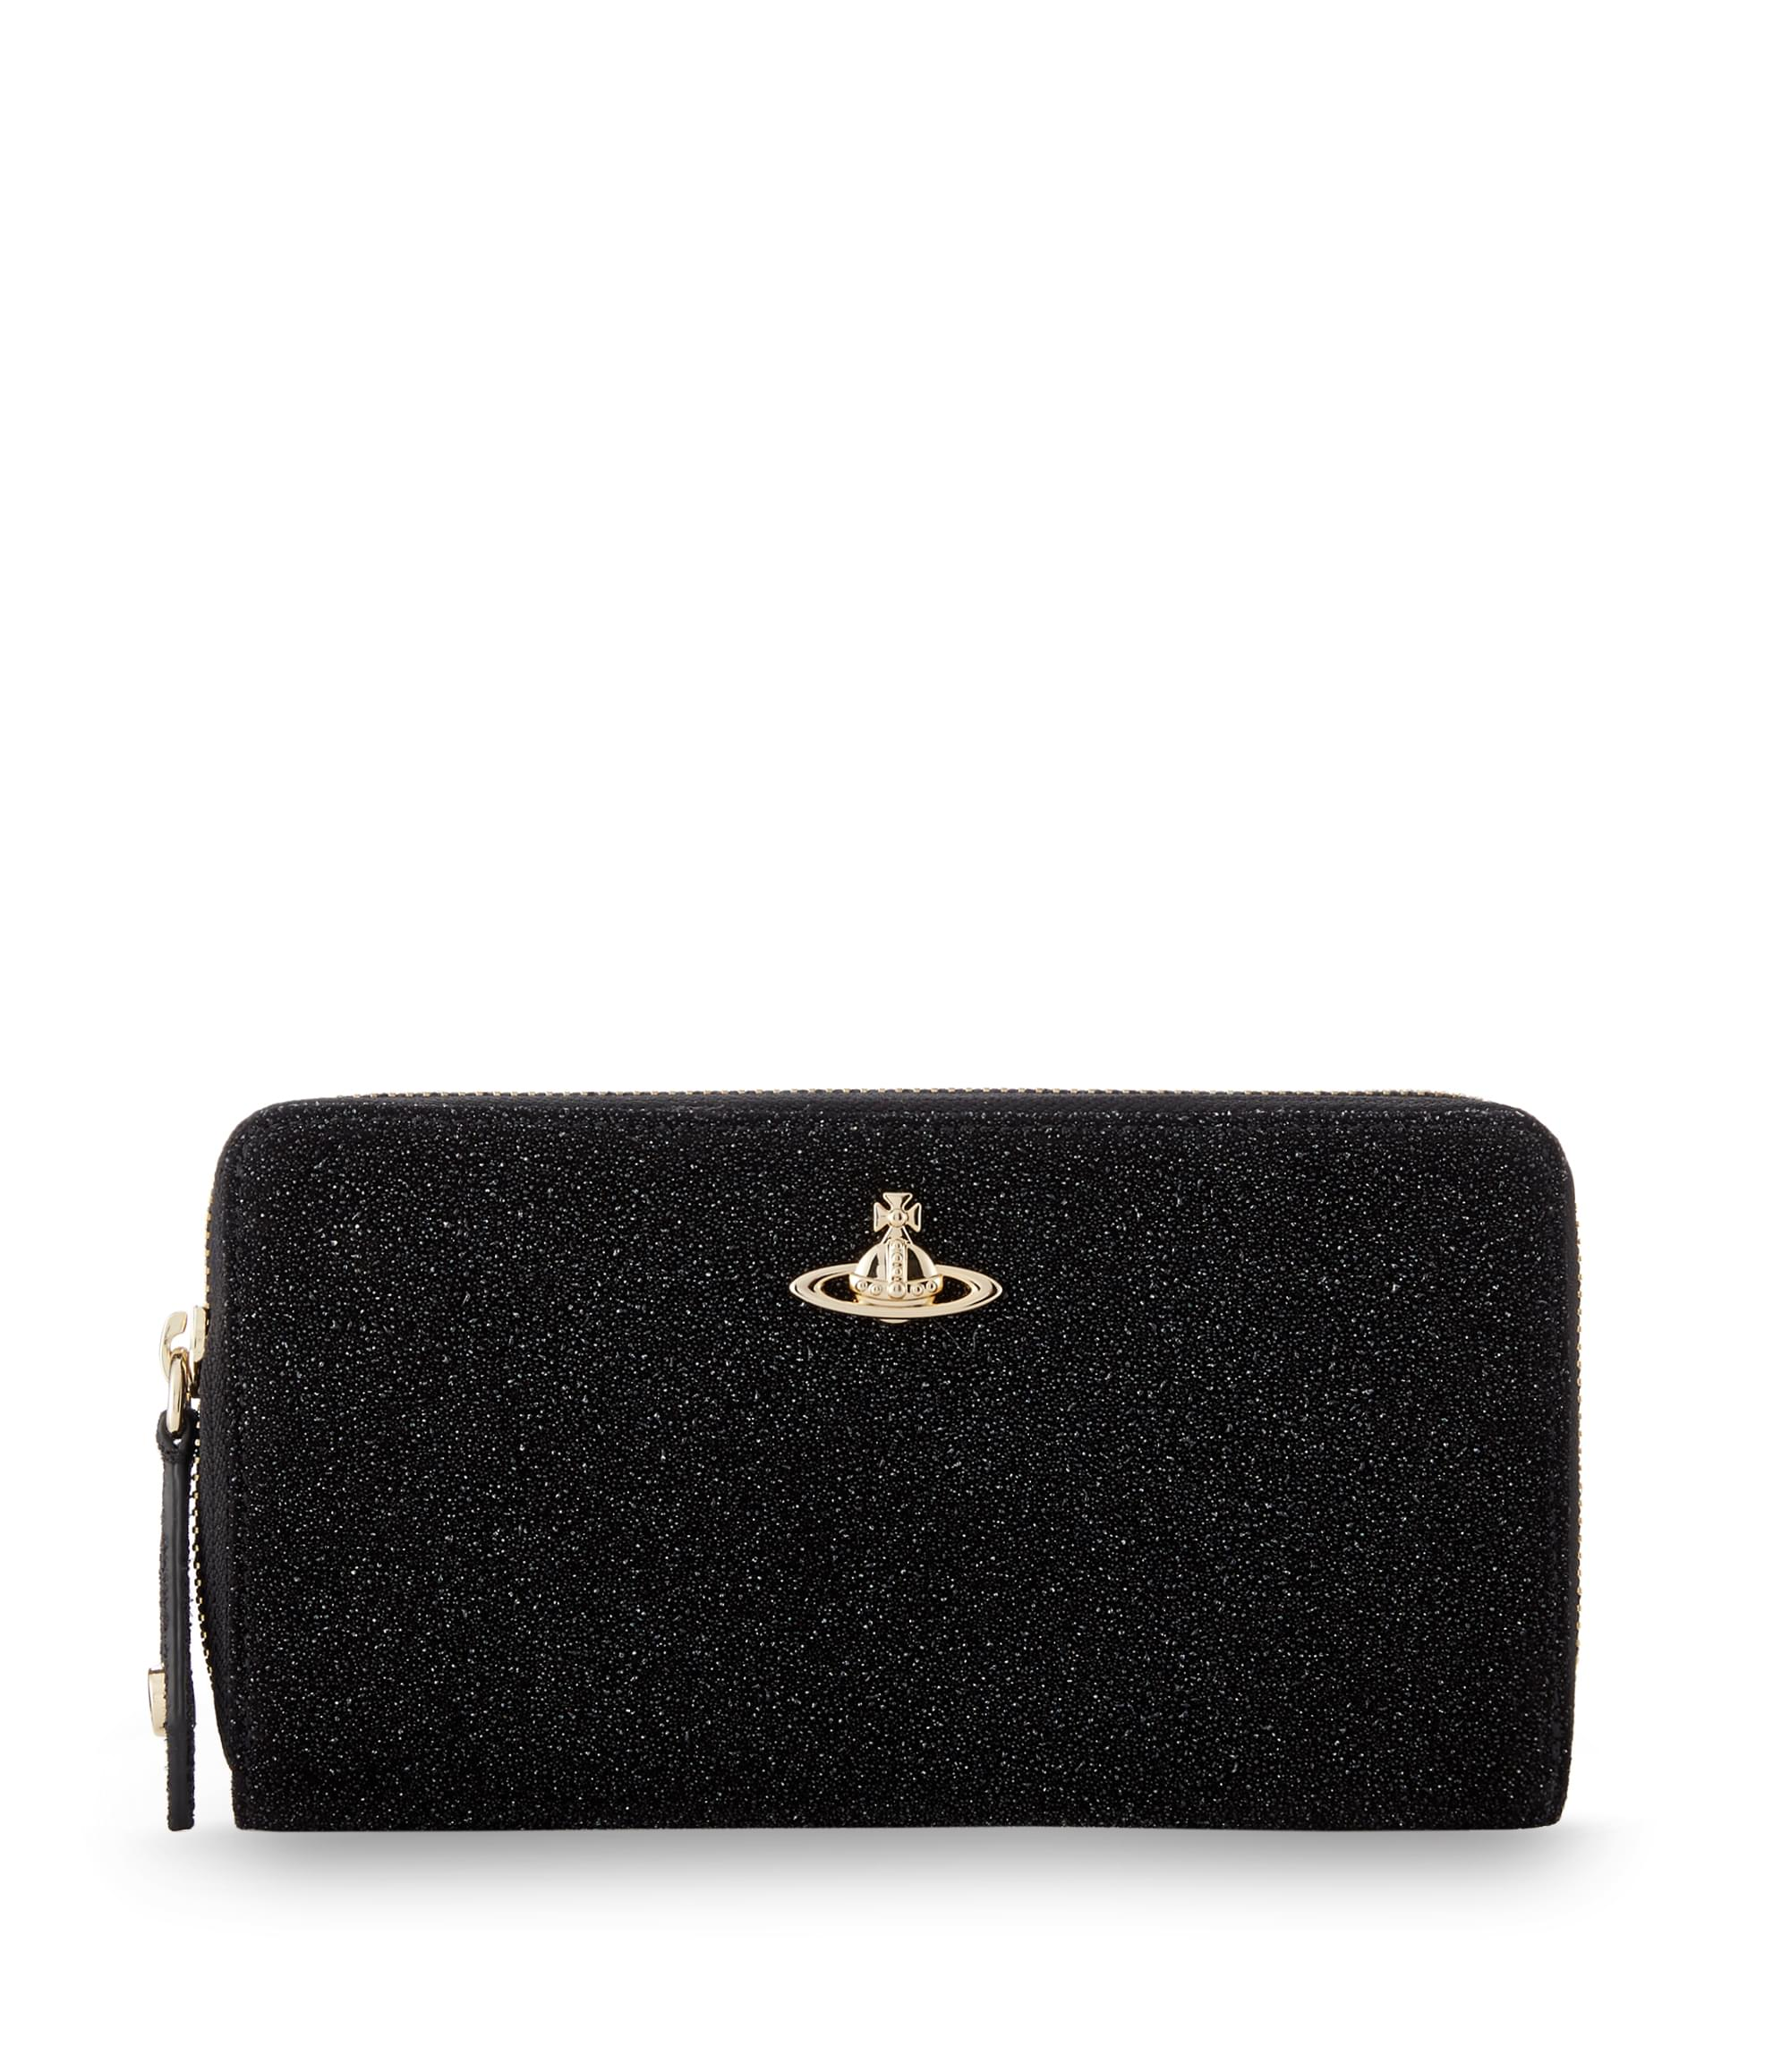 Vivienne Westwood Angel Zip Round Wallet Black 321350